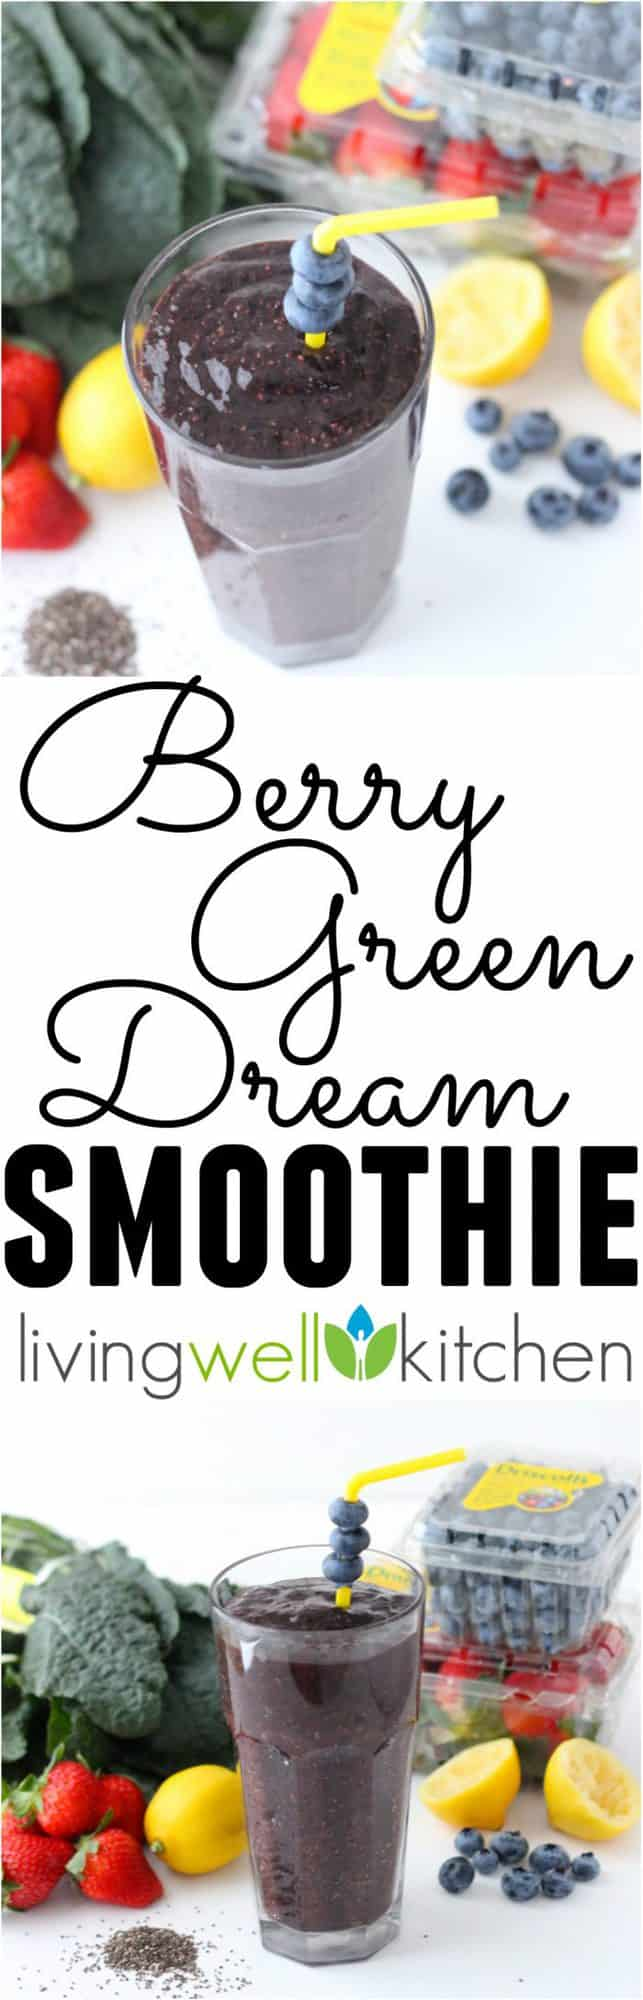 Berry Green Dream Smoothie from @memeinge is a vegan, gluten free smoothie filled with so much goodness in one delicious glass - fruits, veggies, fiber and protein! This recipe is perfect for a healthy, no sugar added meal or a snack (sponsored)